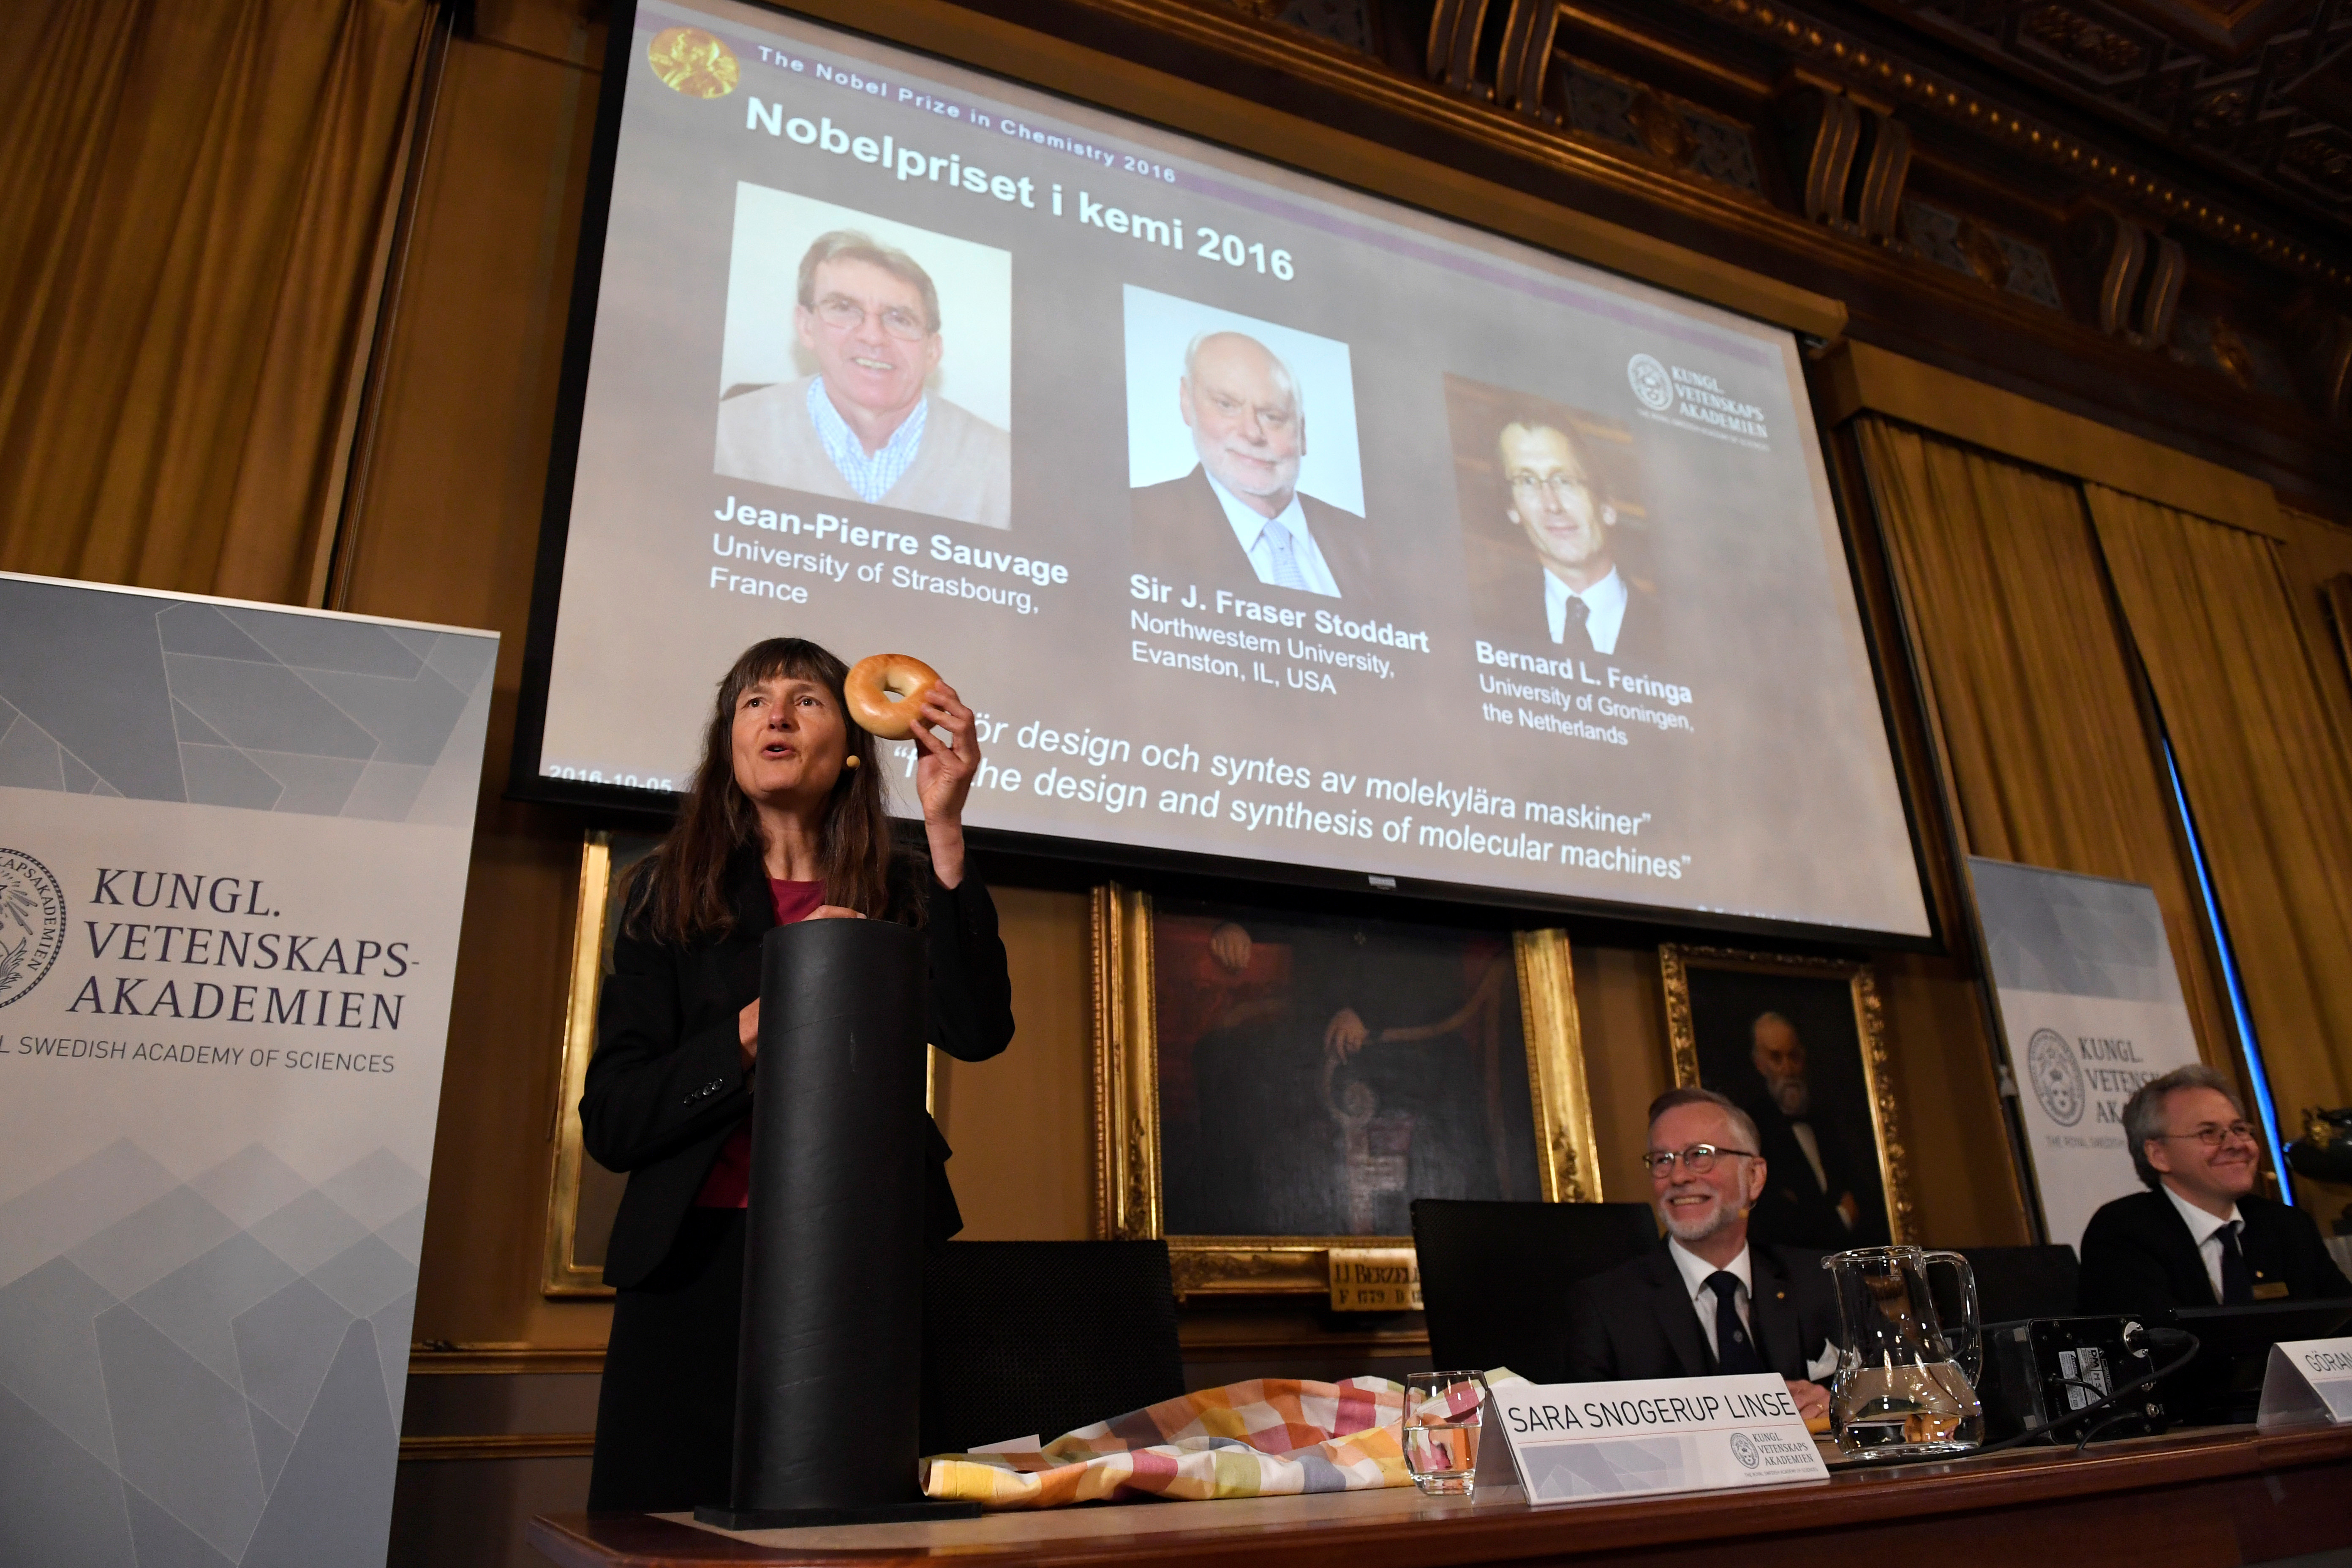 Pictures of the winners of the 2016 Nobel Chemistry Prize: Jean-Pierre Sauvage, J Fraser Stoddart and Bernard L Feringa are displayed on a screen during a news conference by the Royal Swedish Academy of Sciences in Stockholm, Sweden October 5, 2016. TT News Agency/Henrik Montgomery/via Reuters?ATTENTION EDITORS - THIS IMAGE WAS PROVIDED BY A THIRD PARTY. FOR EDITORIAL USE ONLY. NOT FOR SALE FOR MARKETING OR ADVERTISING CAMPAIGNS. SWEDEN OUT. NO COMMERCIAL OR EDITORIAL SALES IN SWEDEN. NO COMMERCIAL SALES. - RTSQUAN